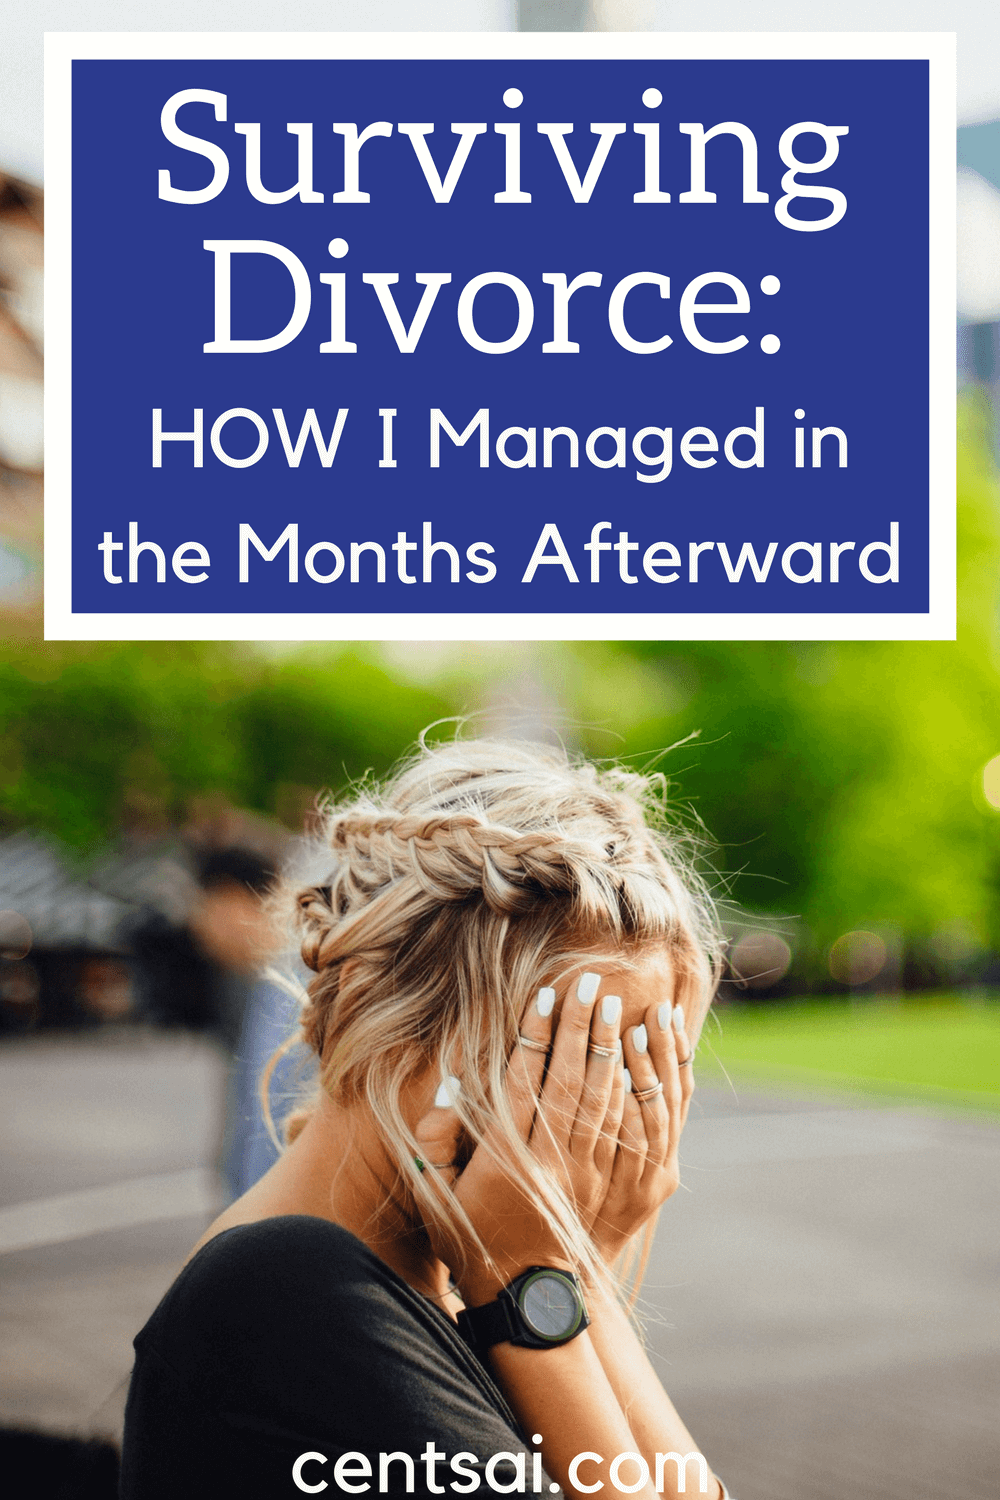 Surviving Divorce How I Managed in the Months Afterward